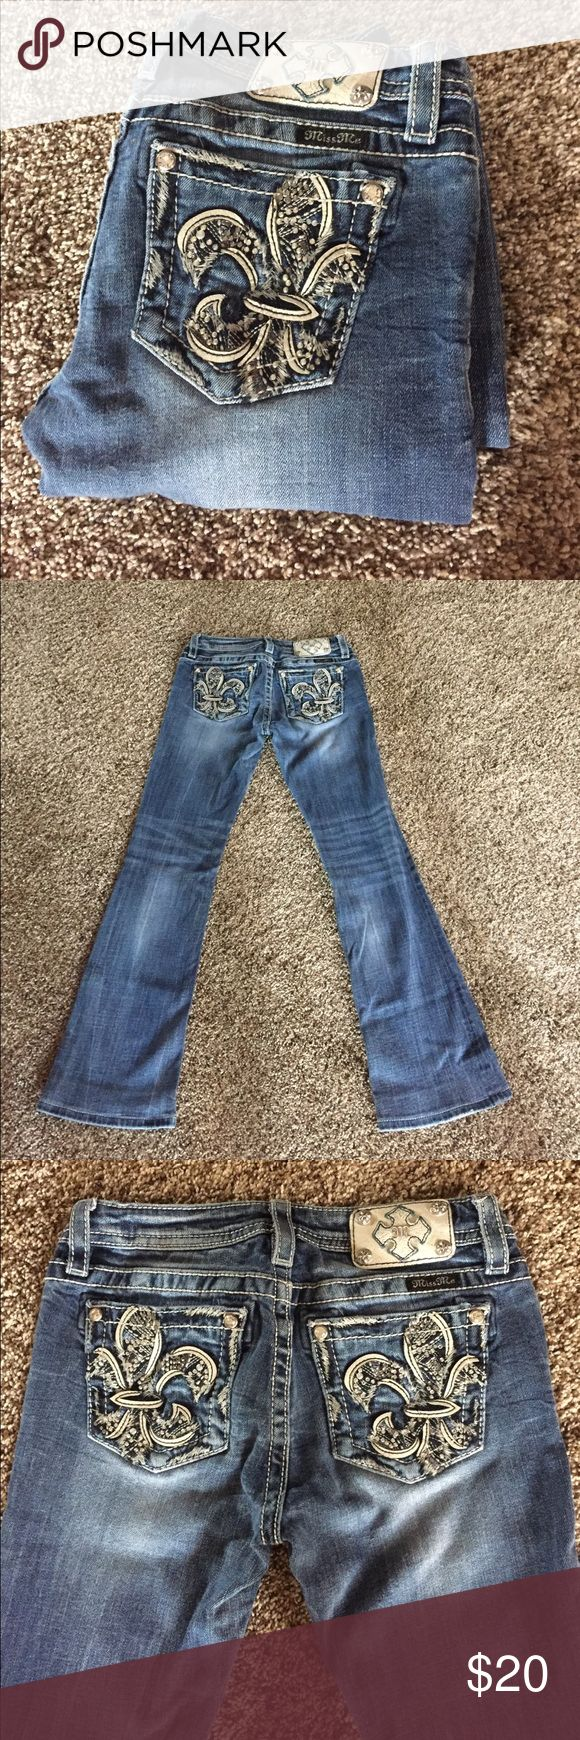 Miss me jeans size 16 juniors bootcut Size 16 juniors bootcut, worn. Hemmed by buckle store inseam now 28 Miss Me Jeans Boot Cut